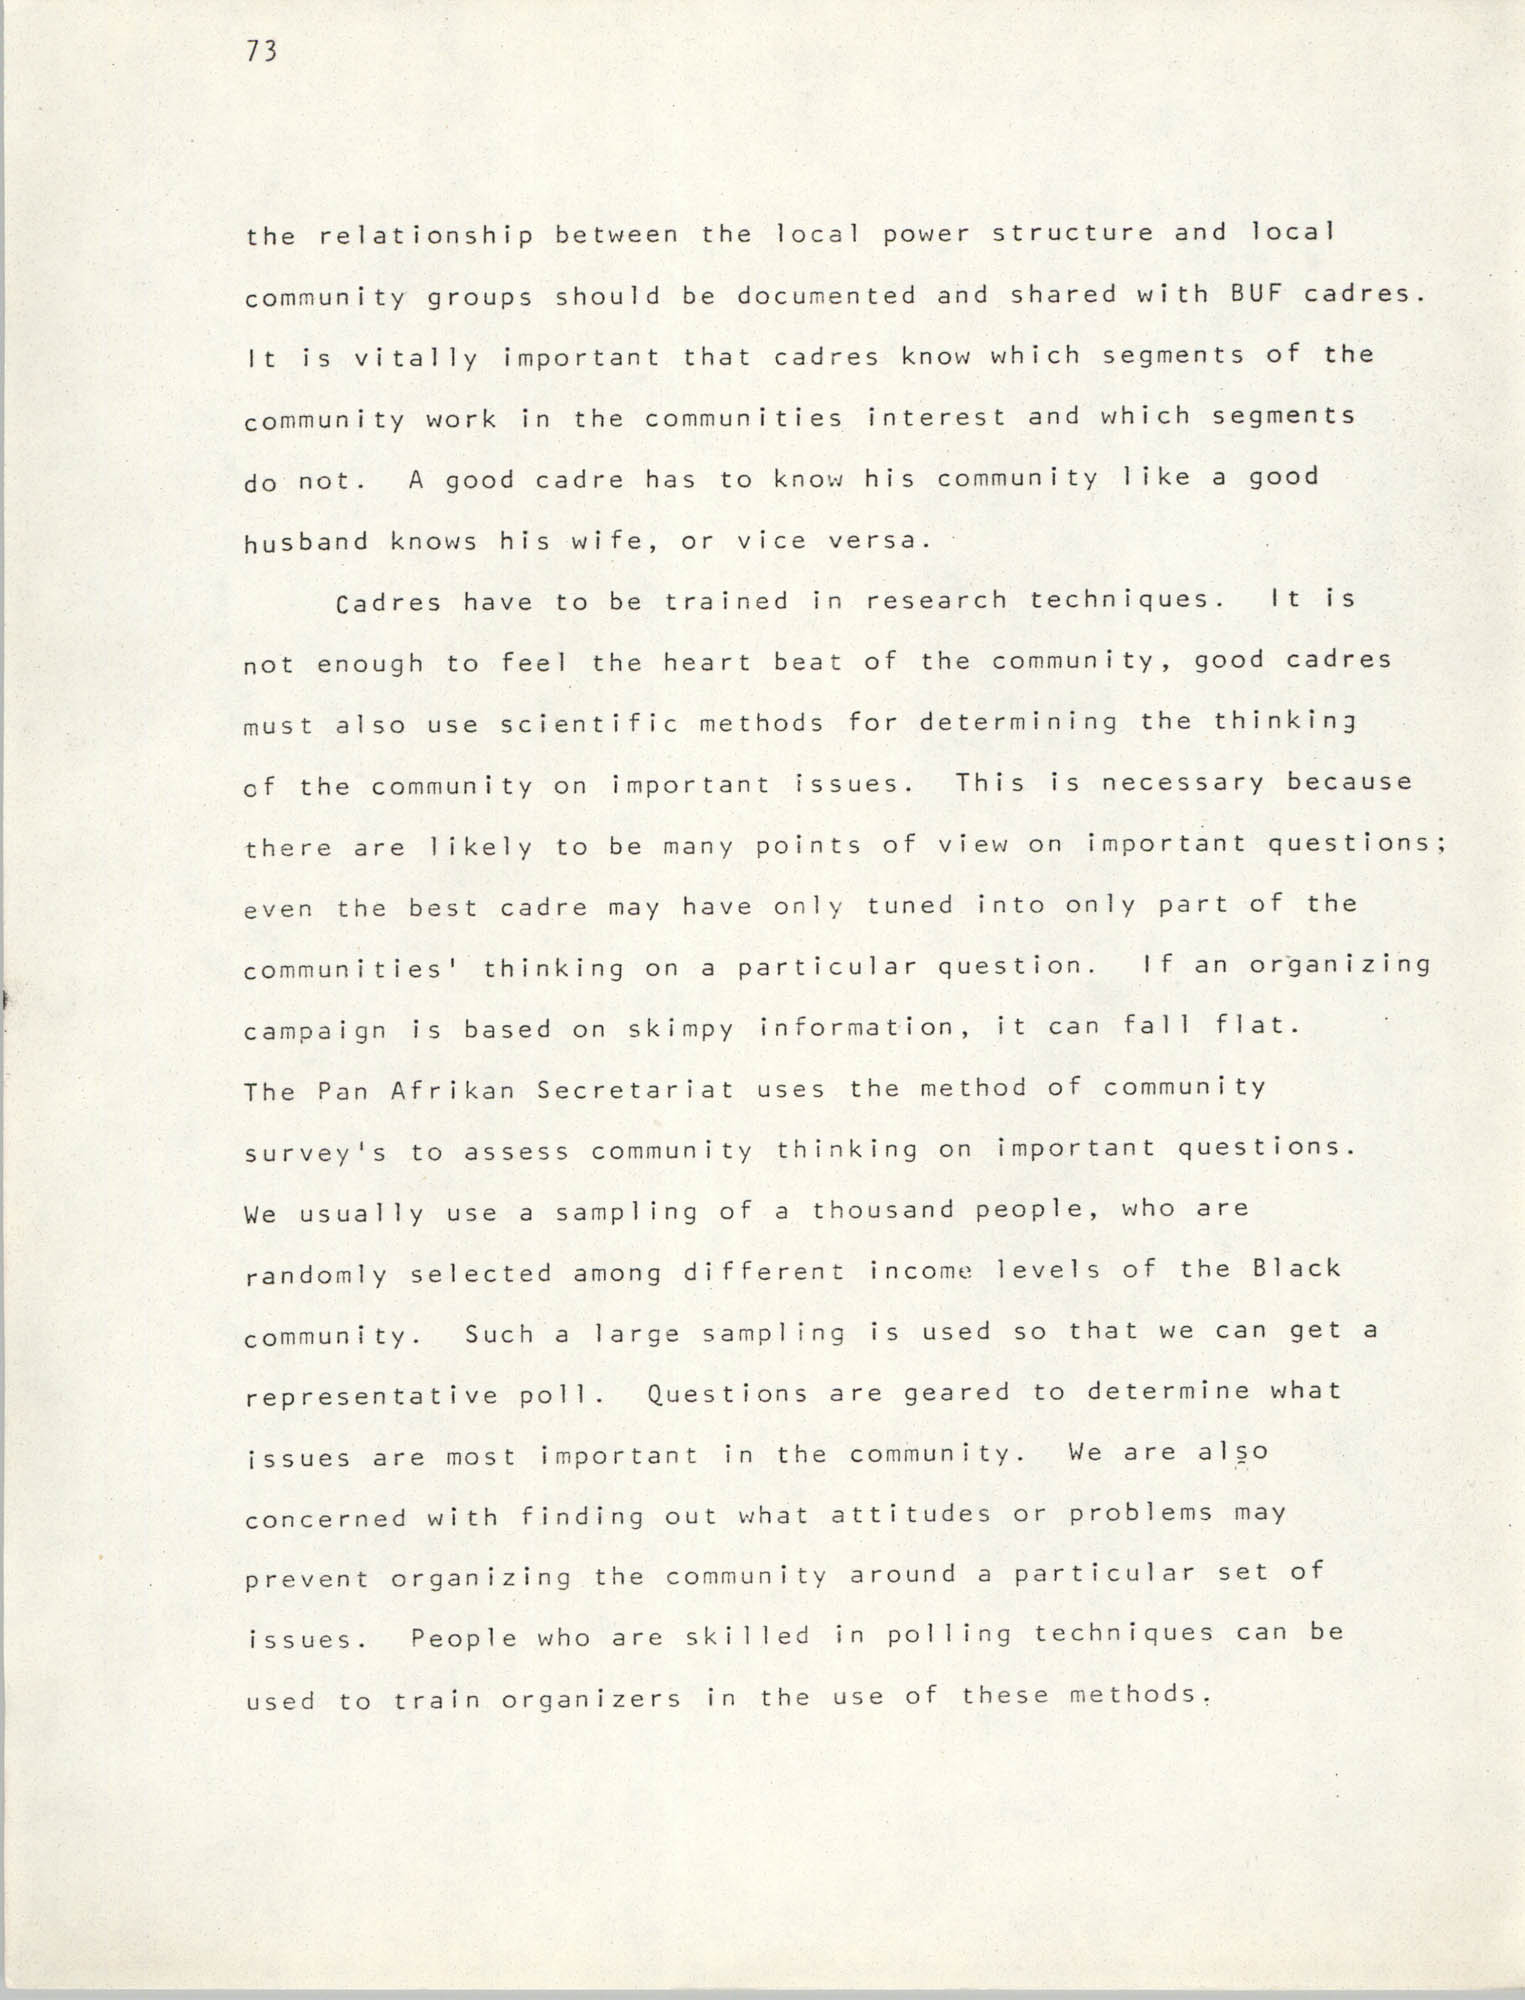 Pan-African Committee of the Black United Front, Page 73